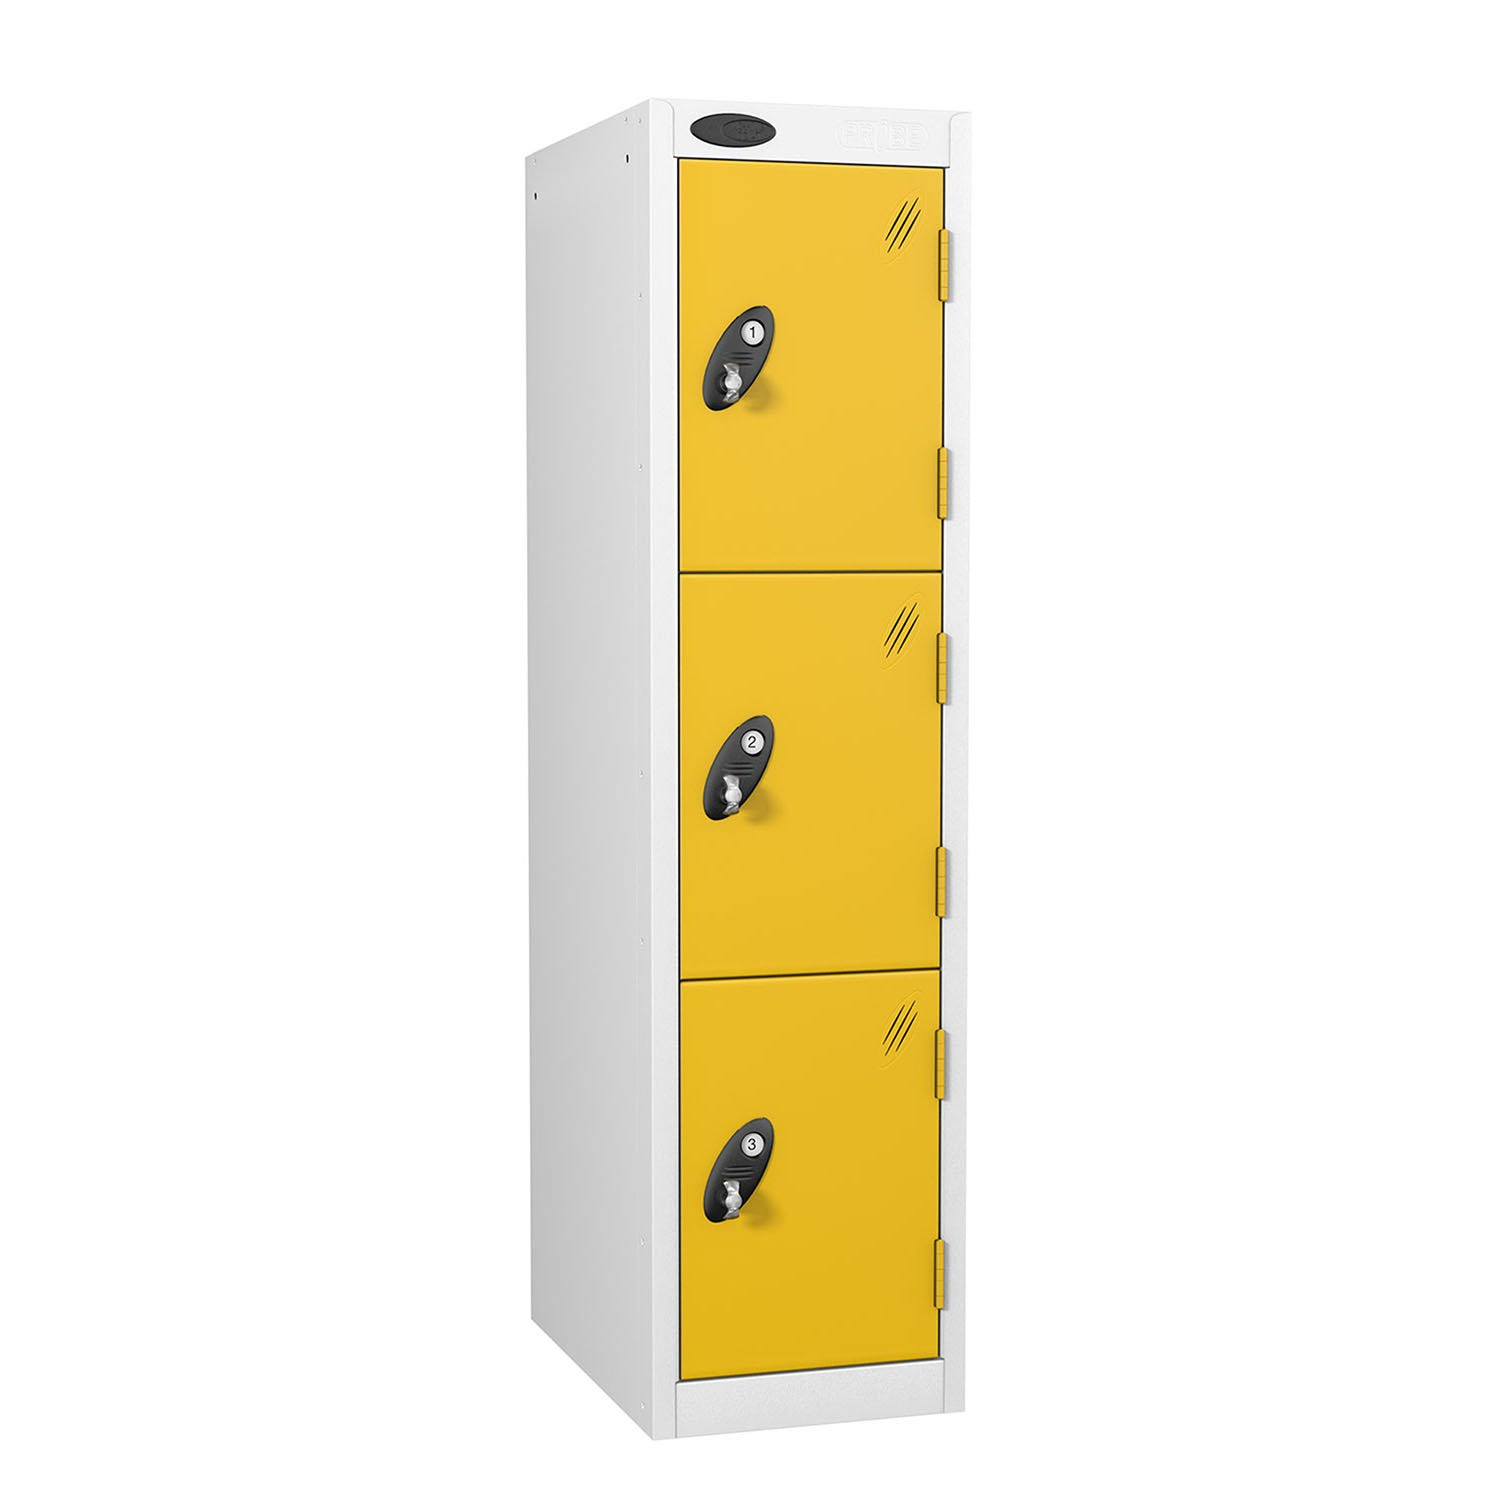 Probe 3 doors low locker in yellow colour